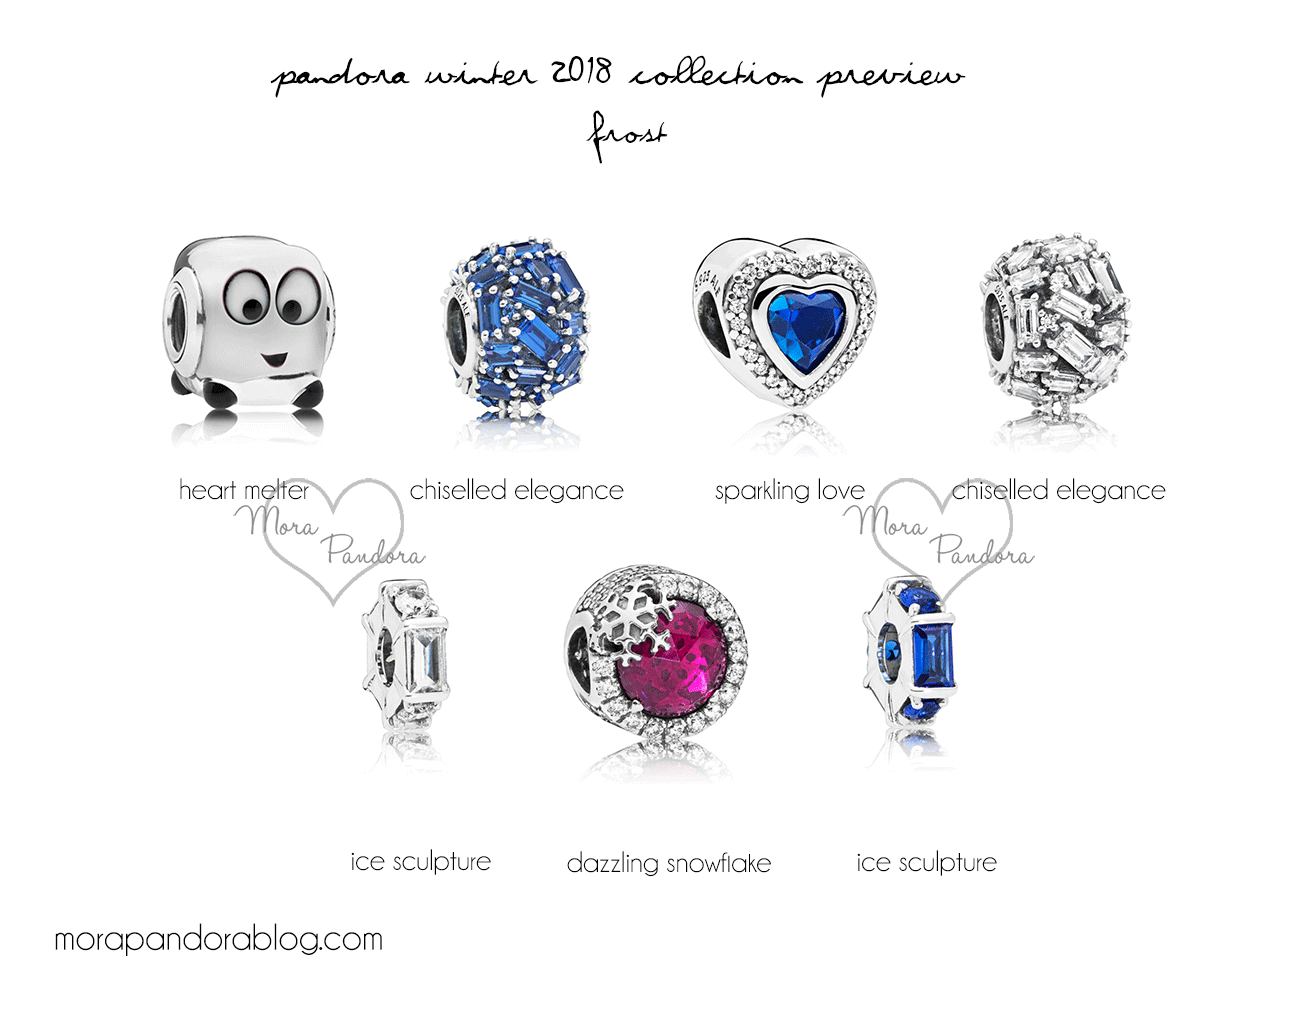 Pandora Winter 2018 collection preview | Pandora | Pinterest ...